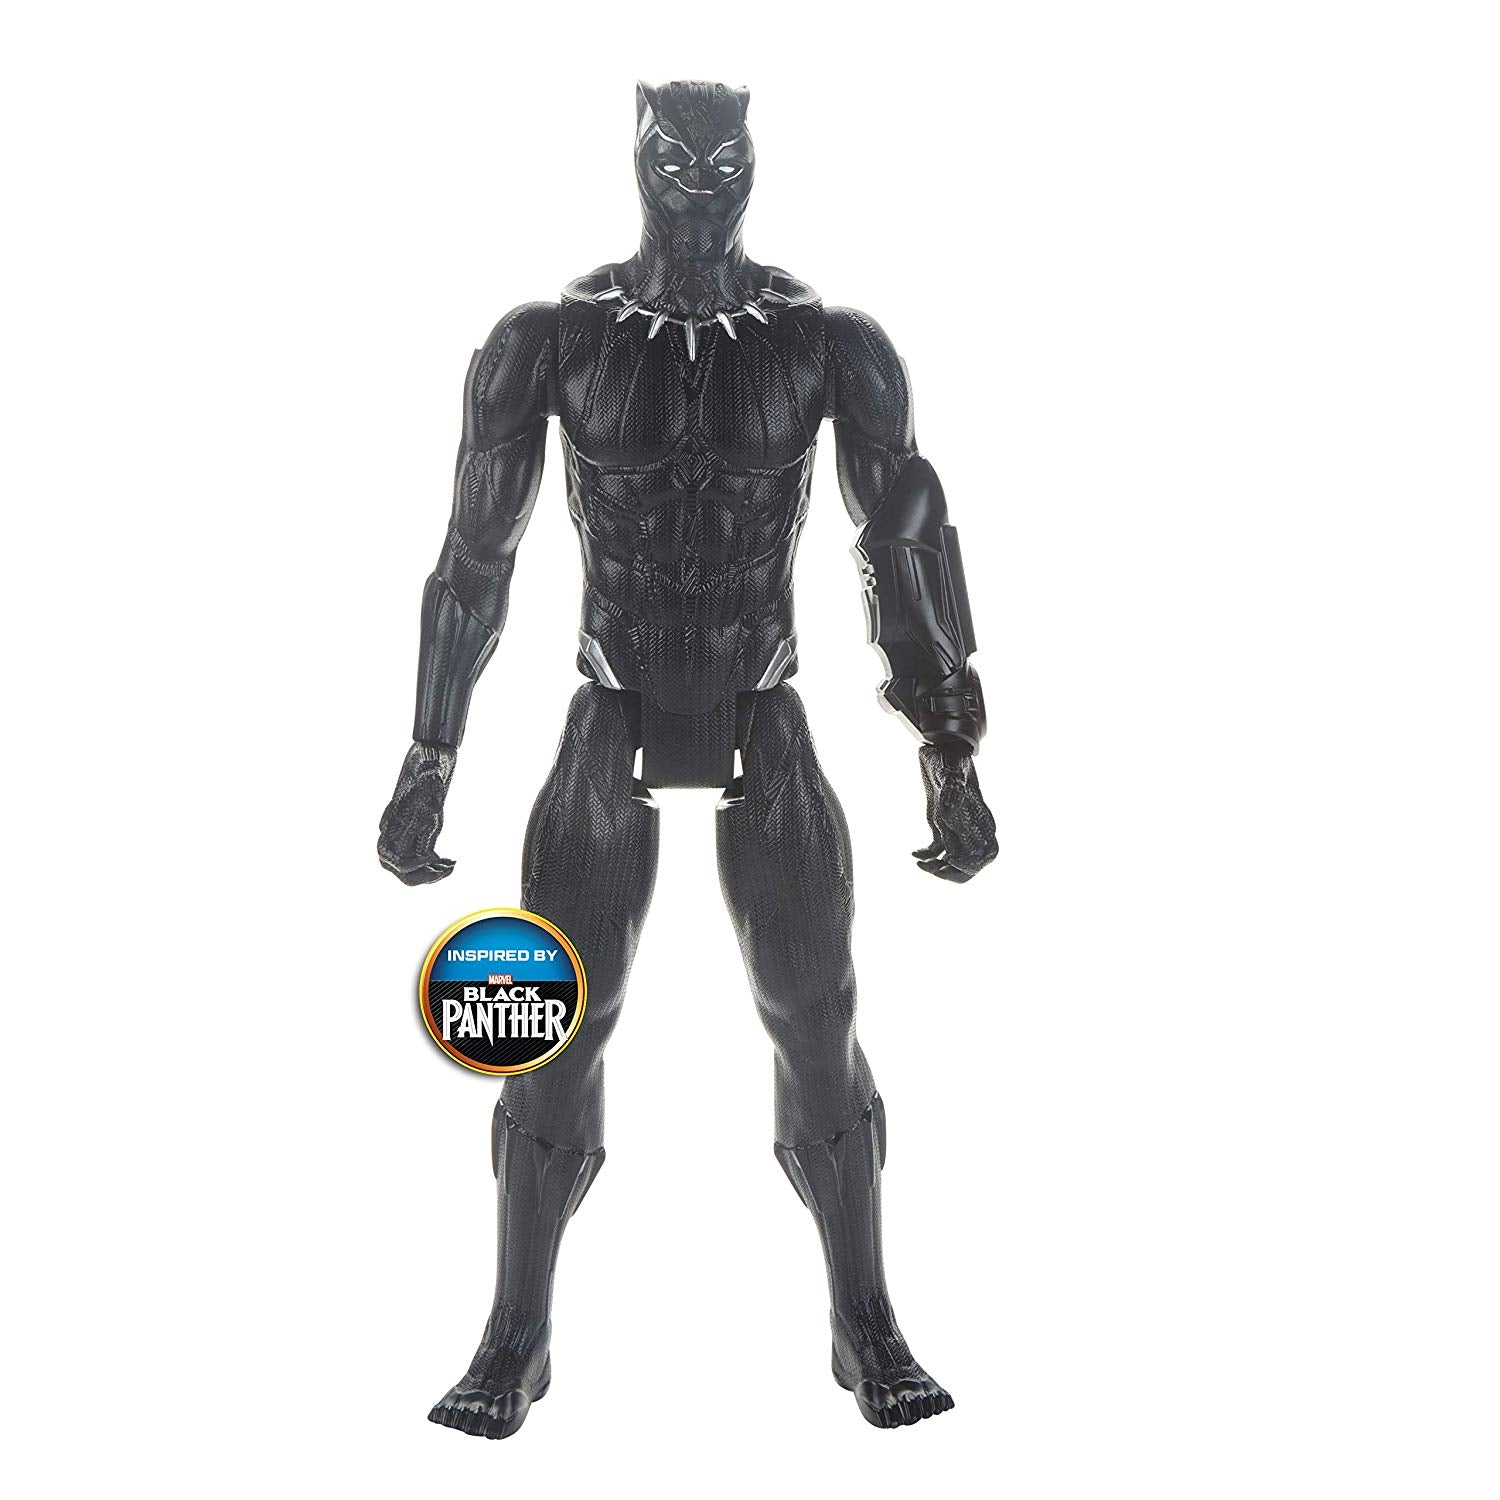 Avengers EndGame Black Panther 12-Inch Figure by Hasbro -Hasbro - India - www.superherotoystore.com